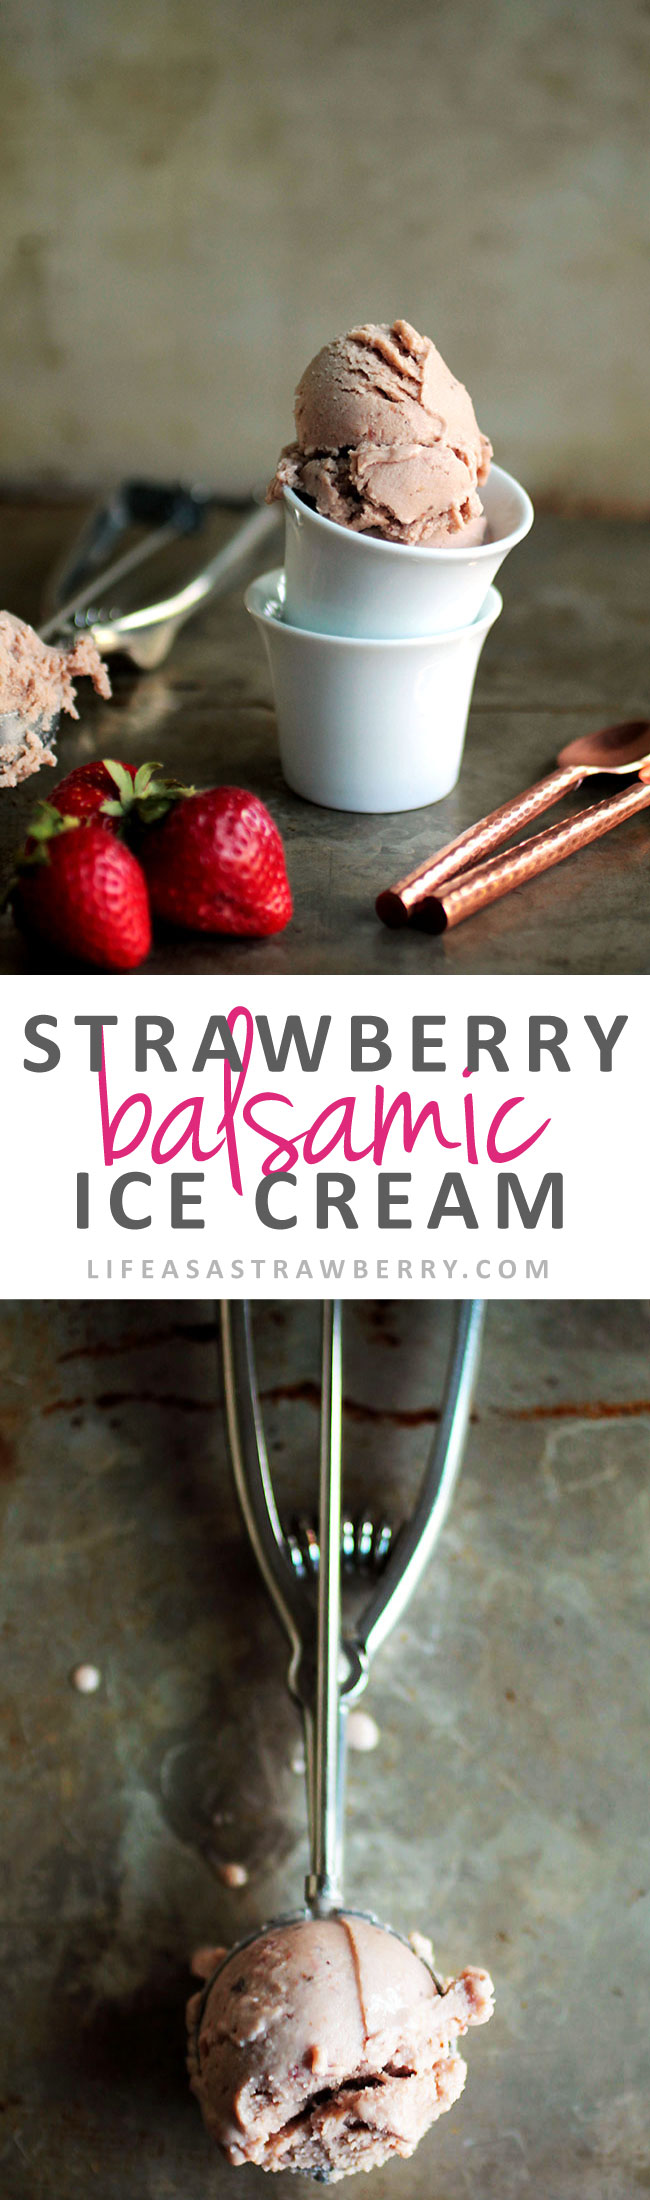 Roasted Strawberry Balsamic Ice Cream - This easy homemade strawberry ice cream gets added flavor from roasting fresh strawberries with a splash of balsamic vinegar. The perfect summer berry dessert recipe! Vegetarian.